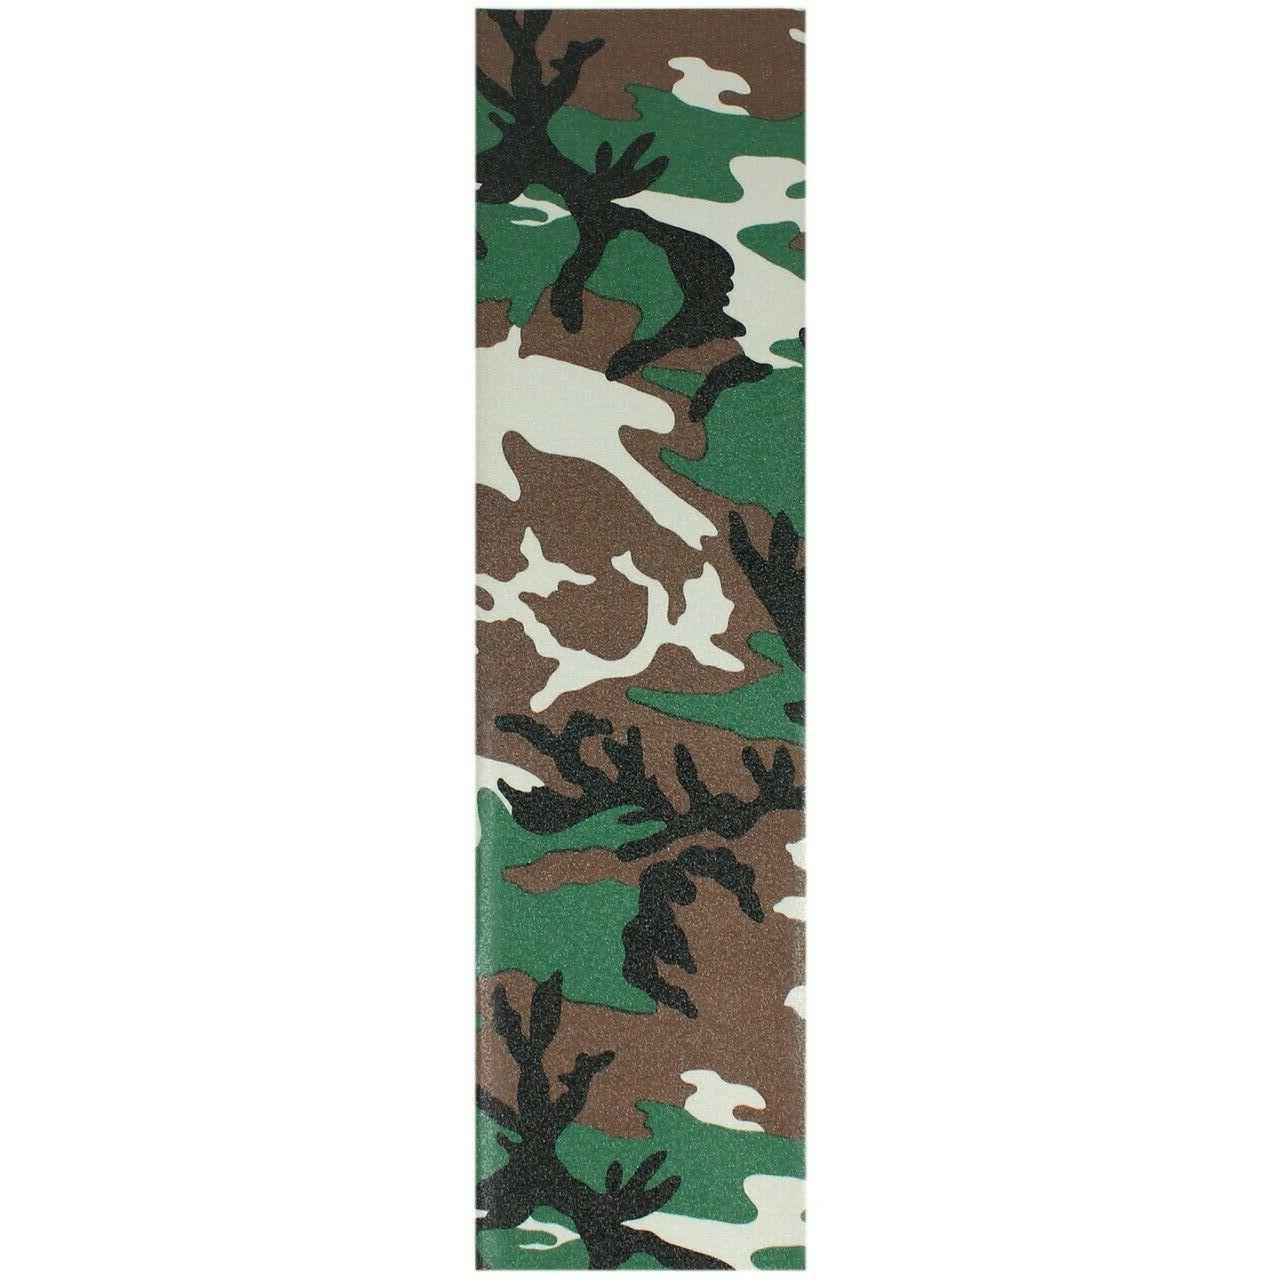 jessup quality skateboard grip tape camo 9